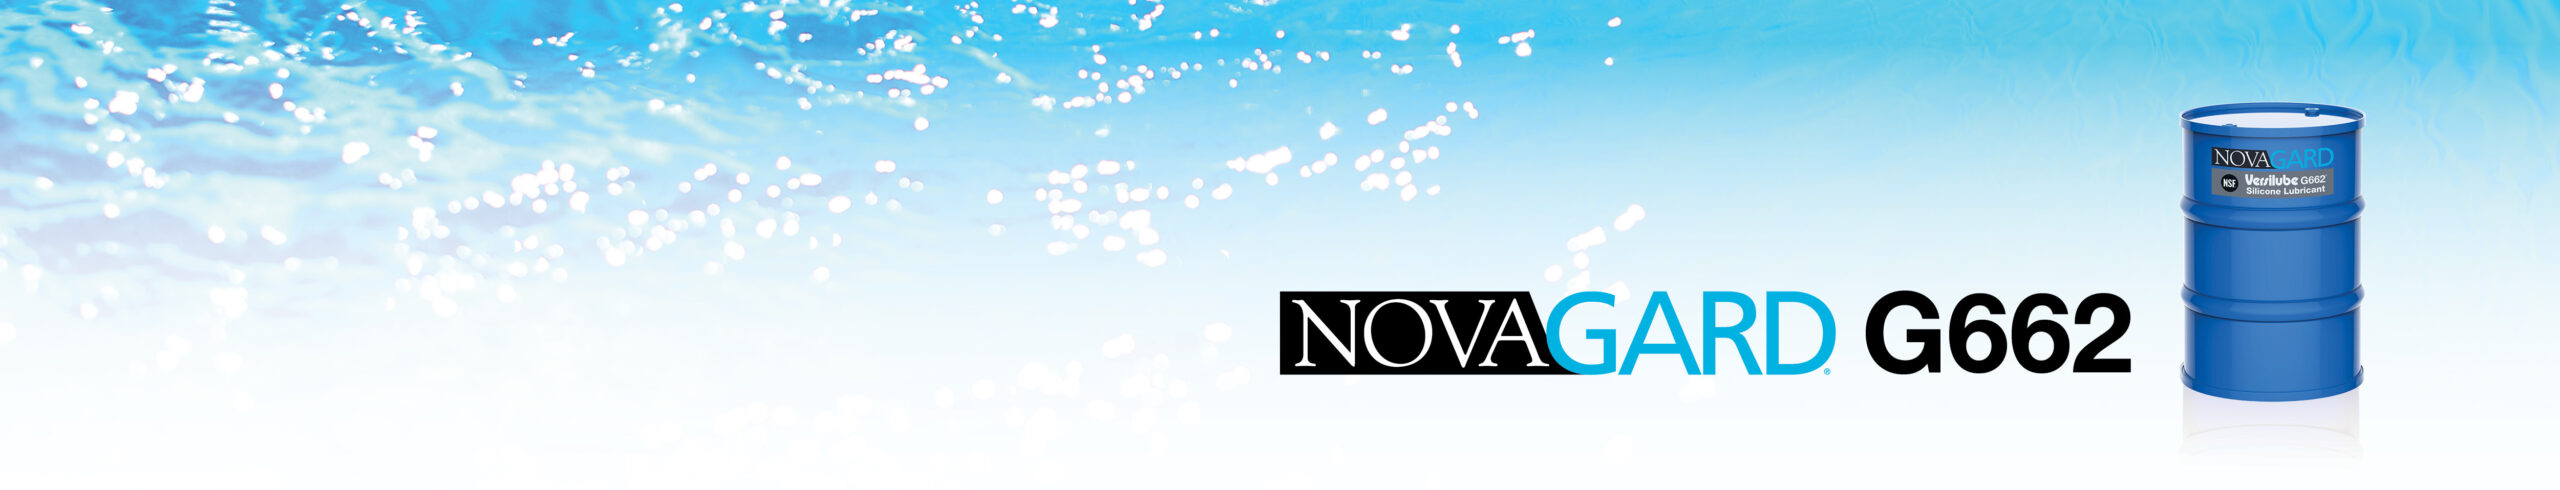 Novagard G662 is a direct replacement for Molykote 111 compound DC111